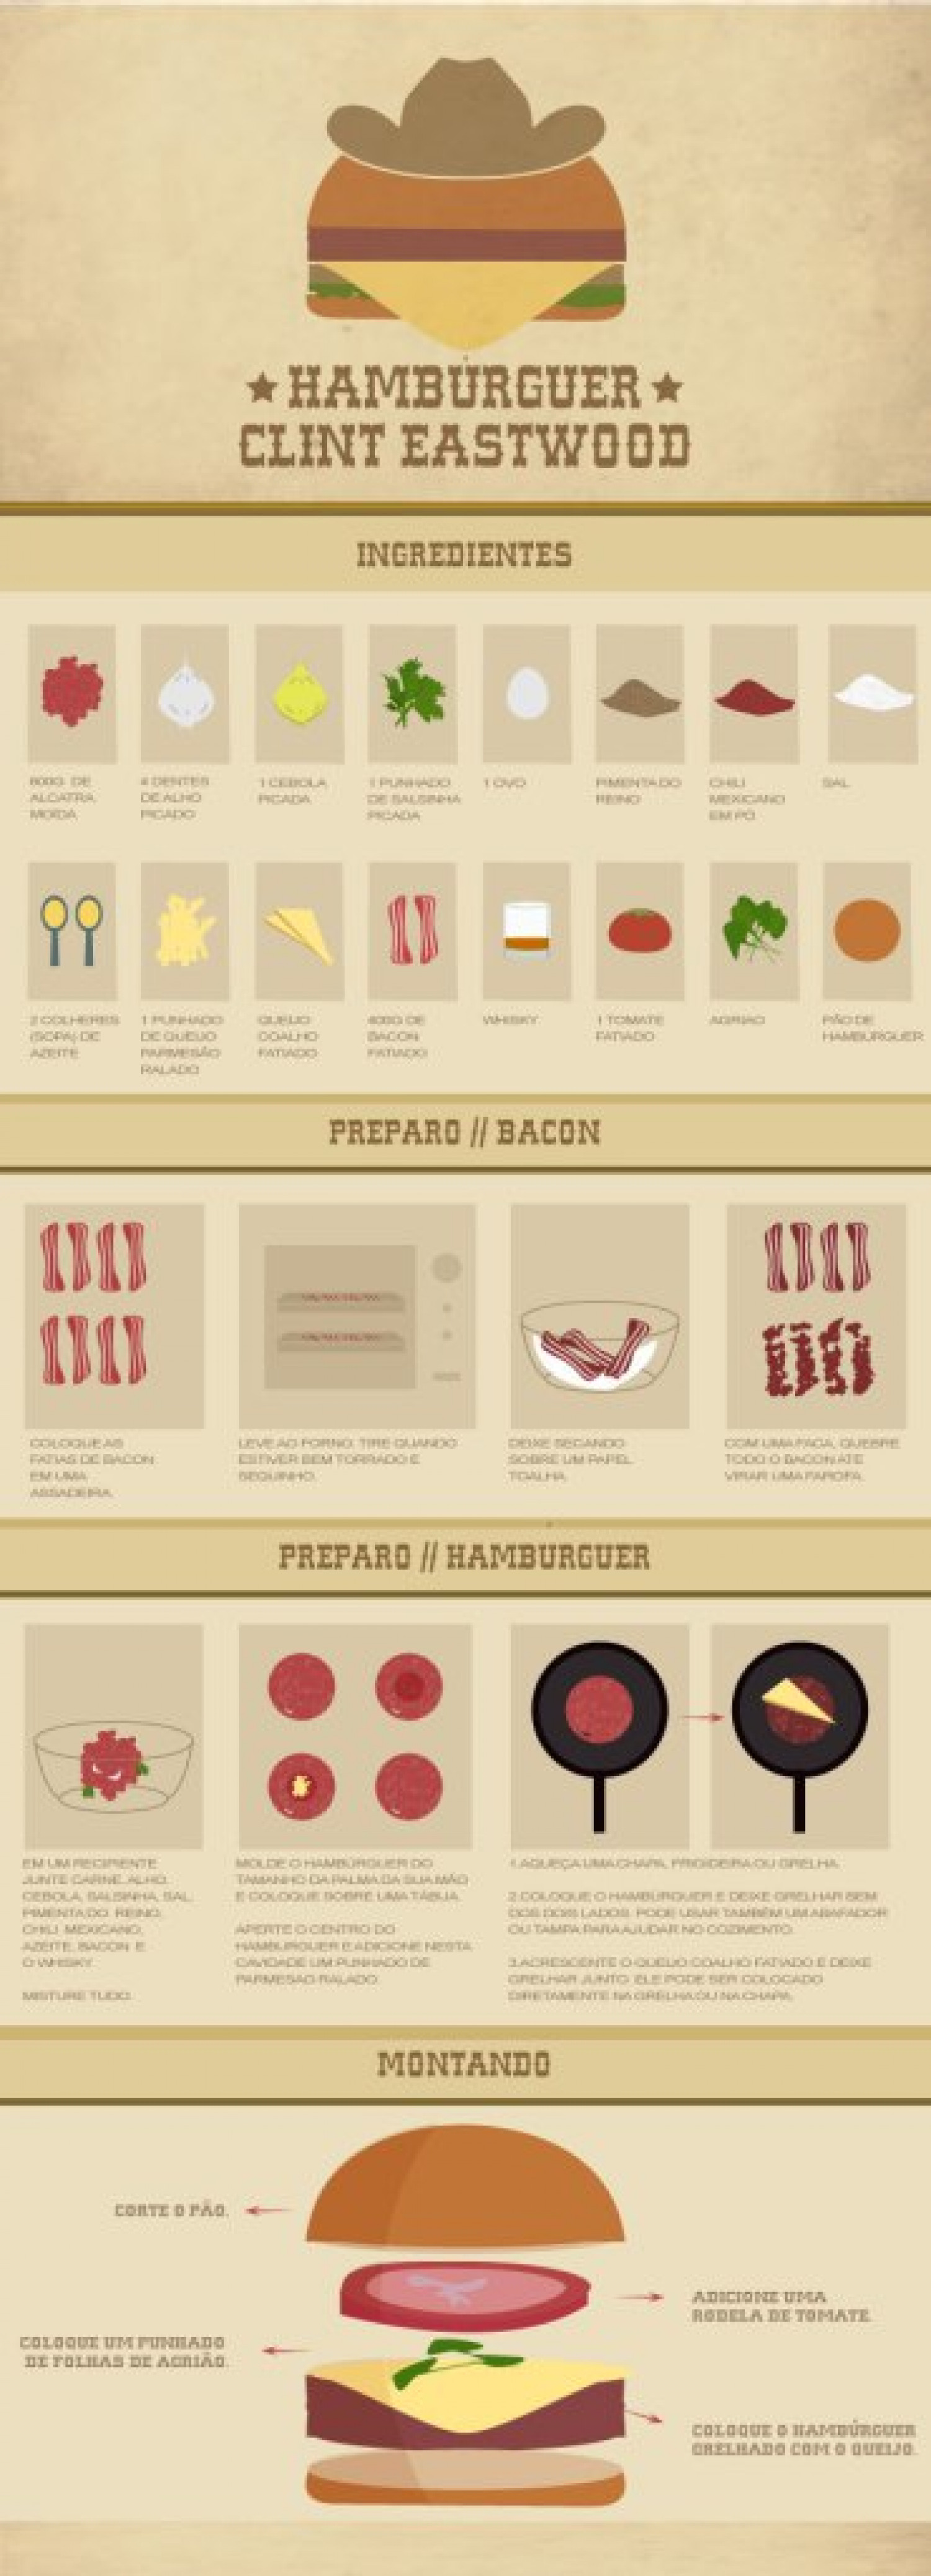 Hamburguer Clint Eastwood Infographic